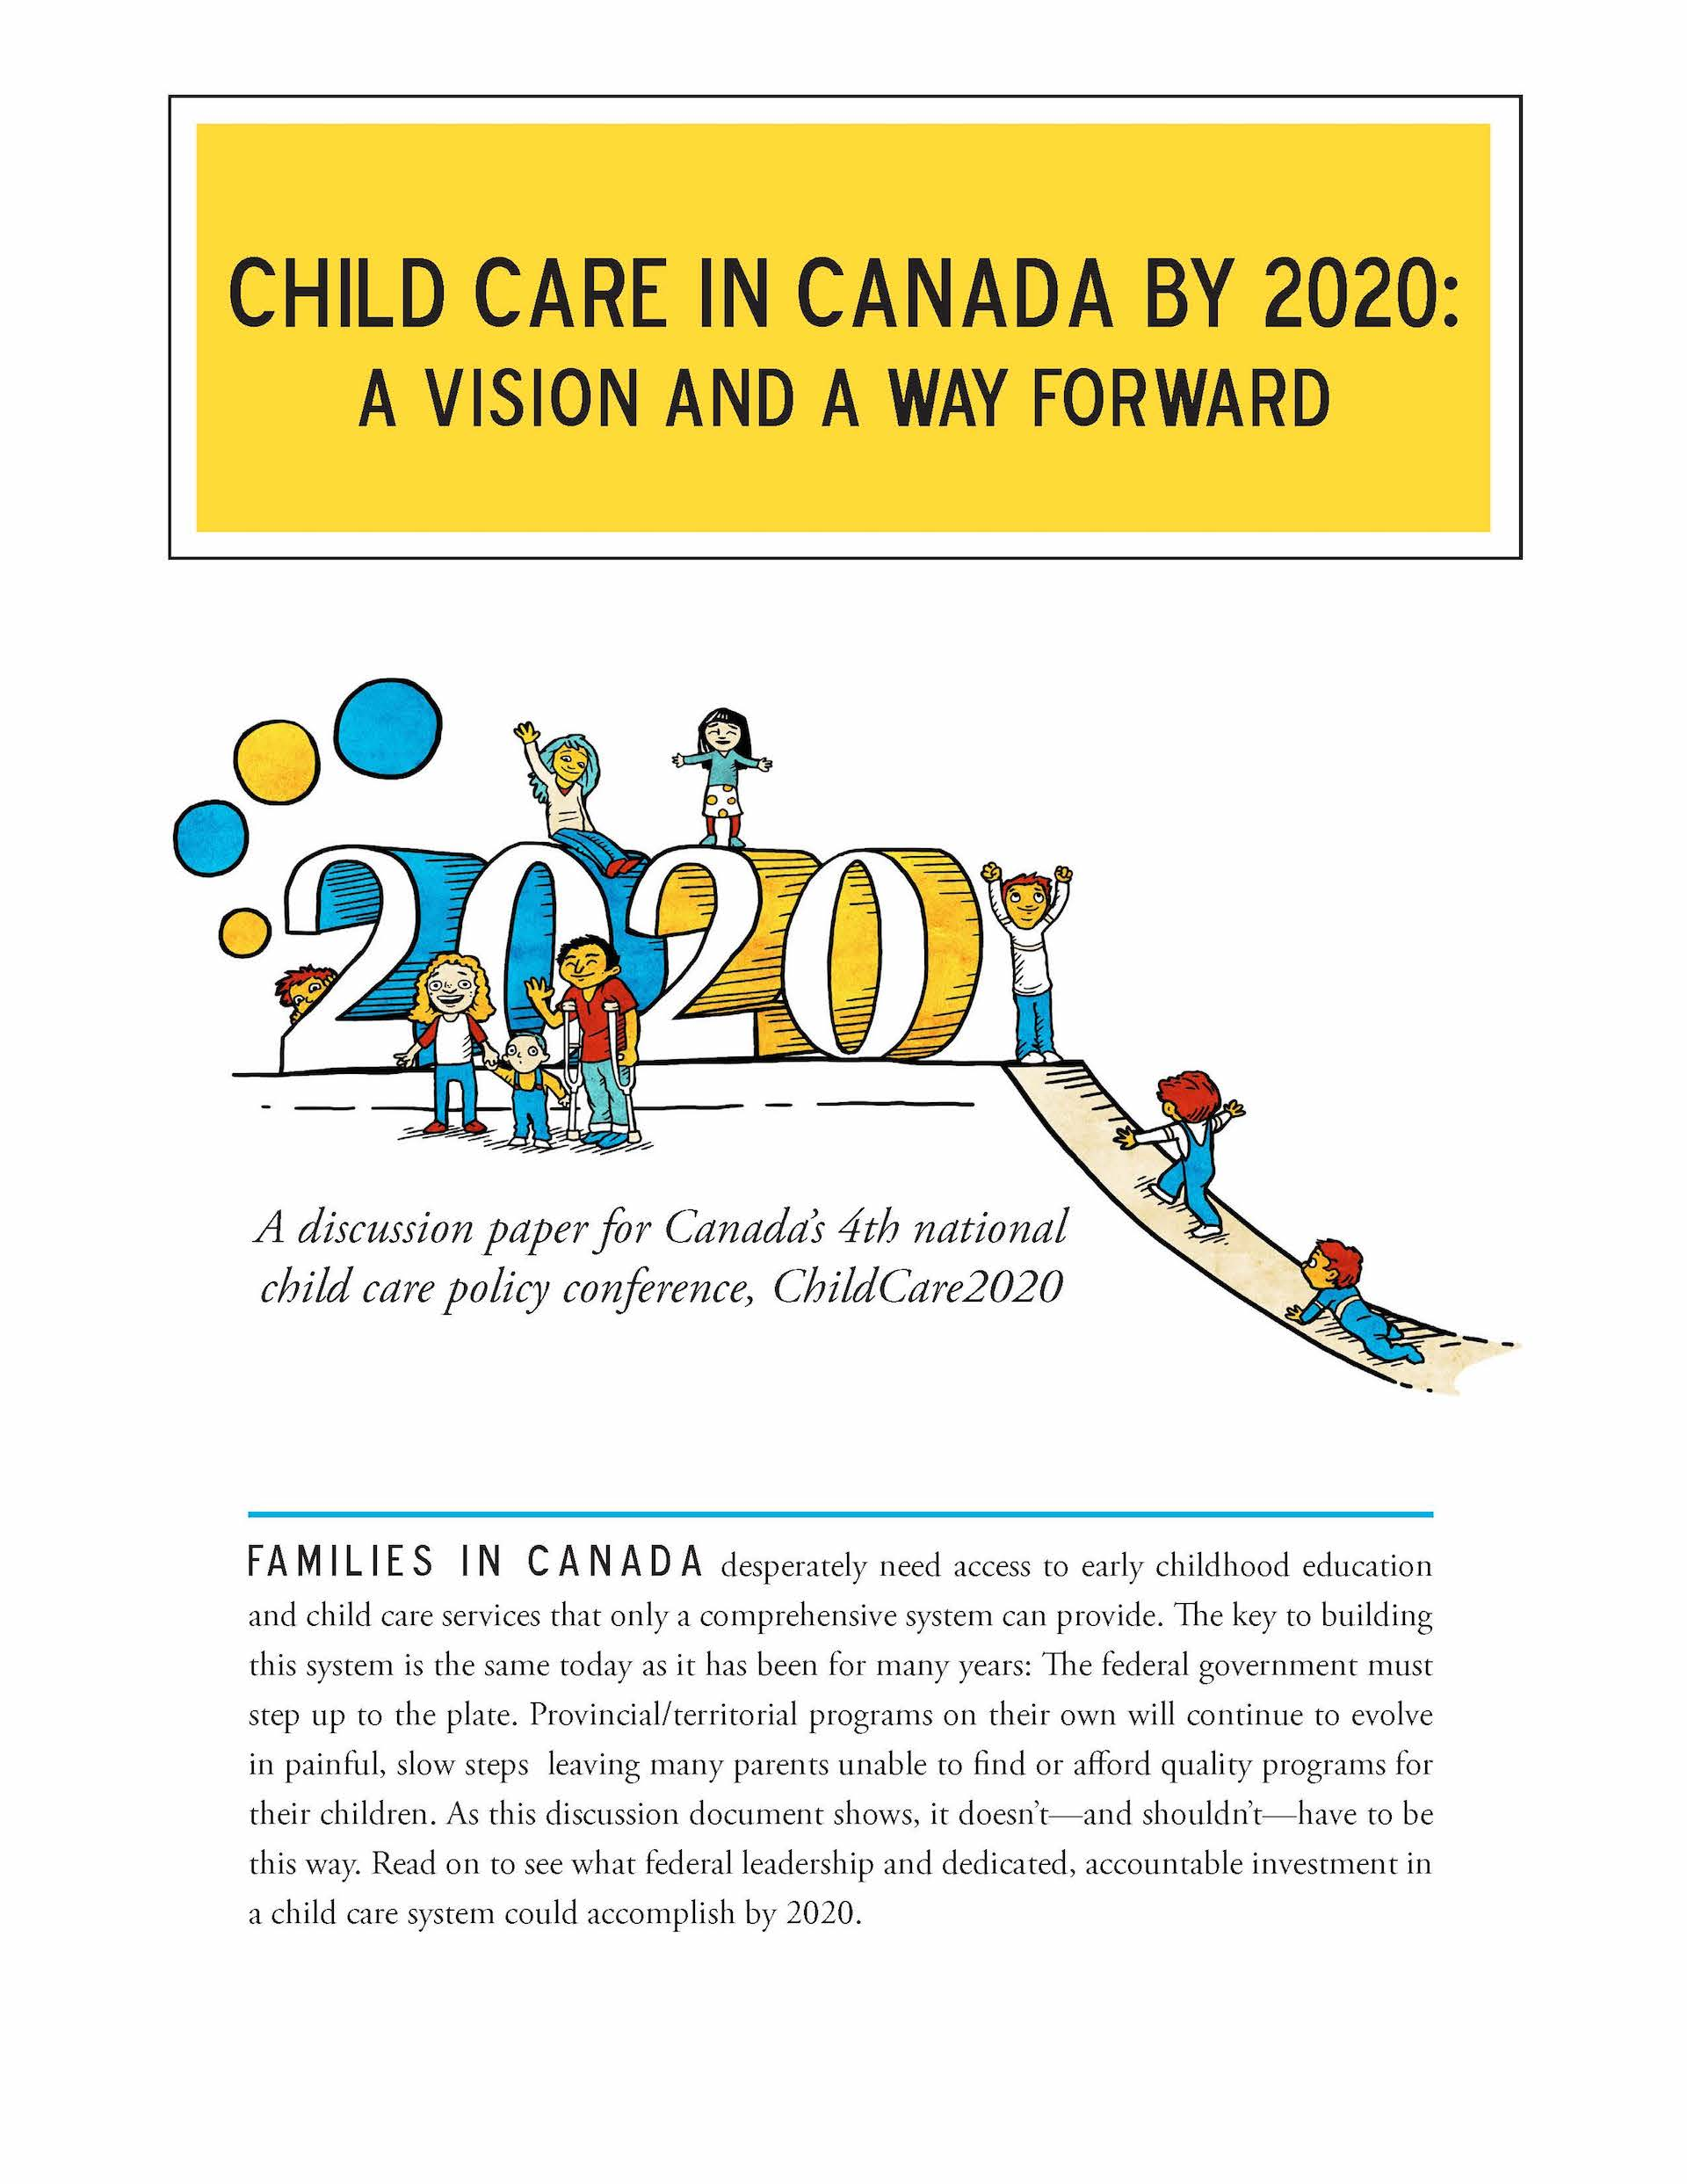 Child Care in Canada by 2020: A vision and a way forward